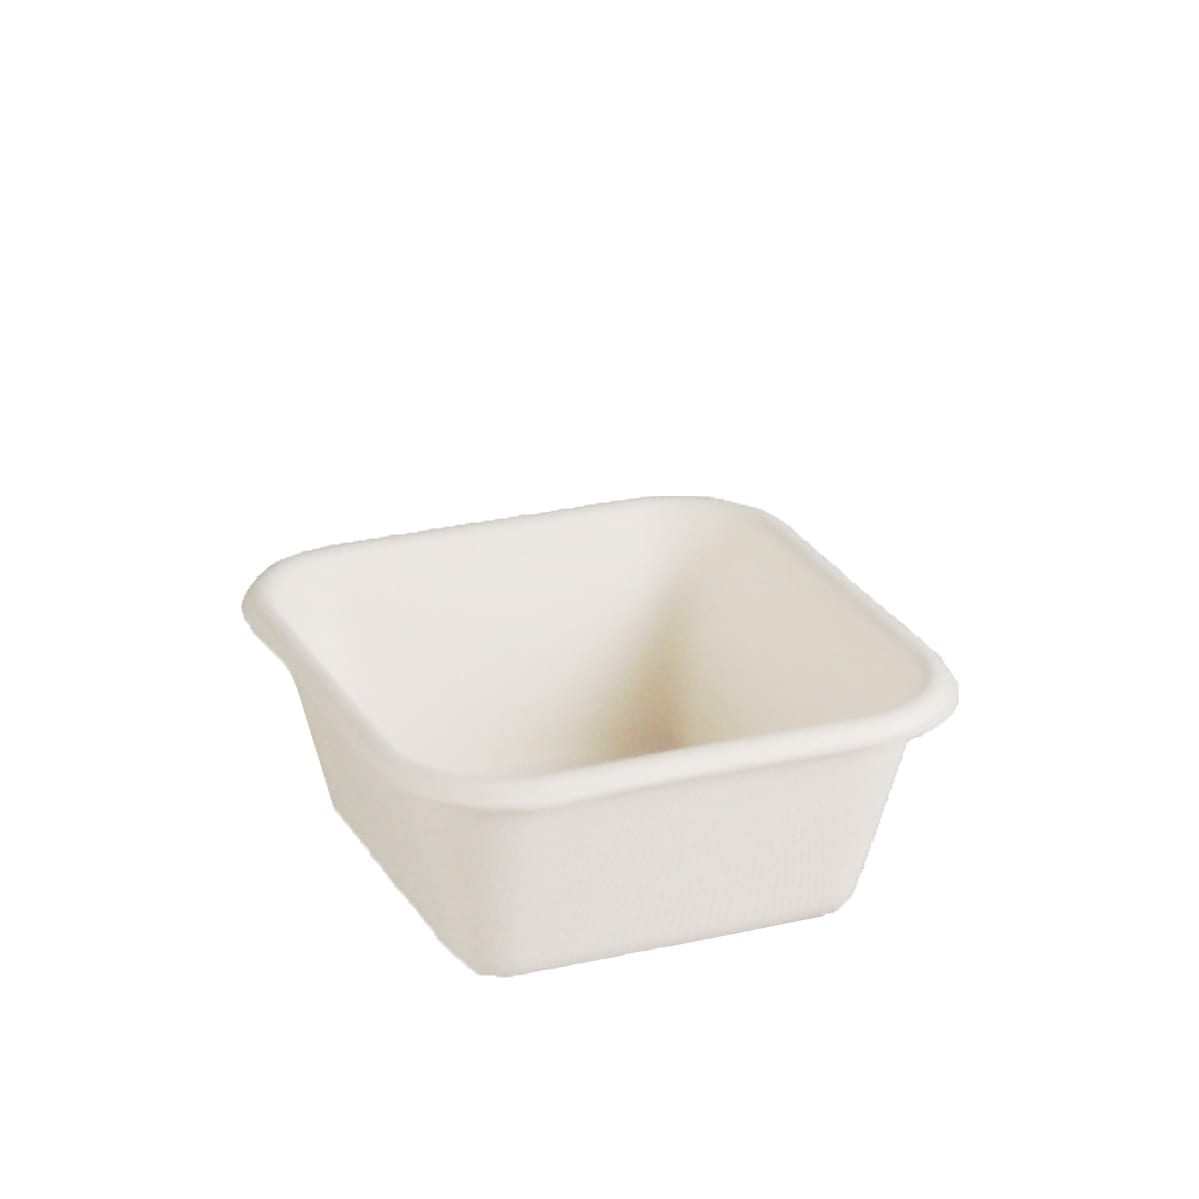 Biodegradable and compostable small container 250ml